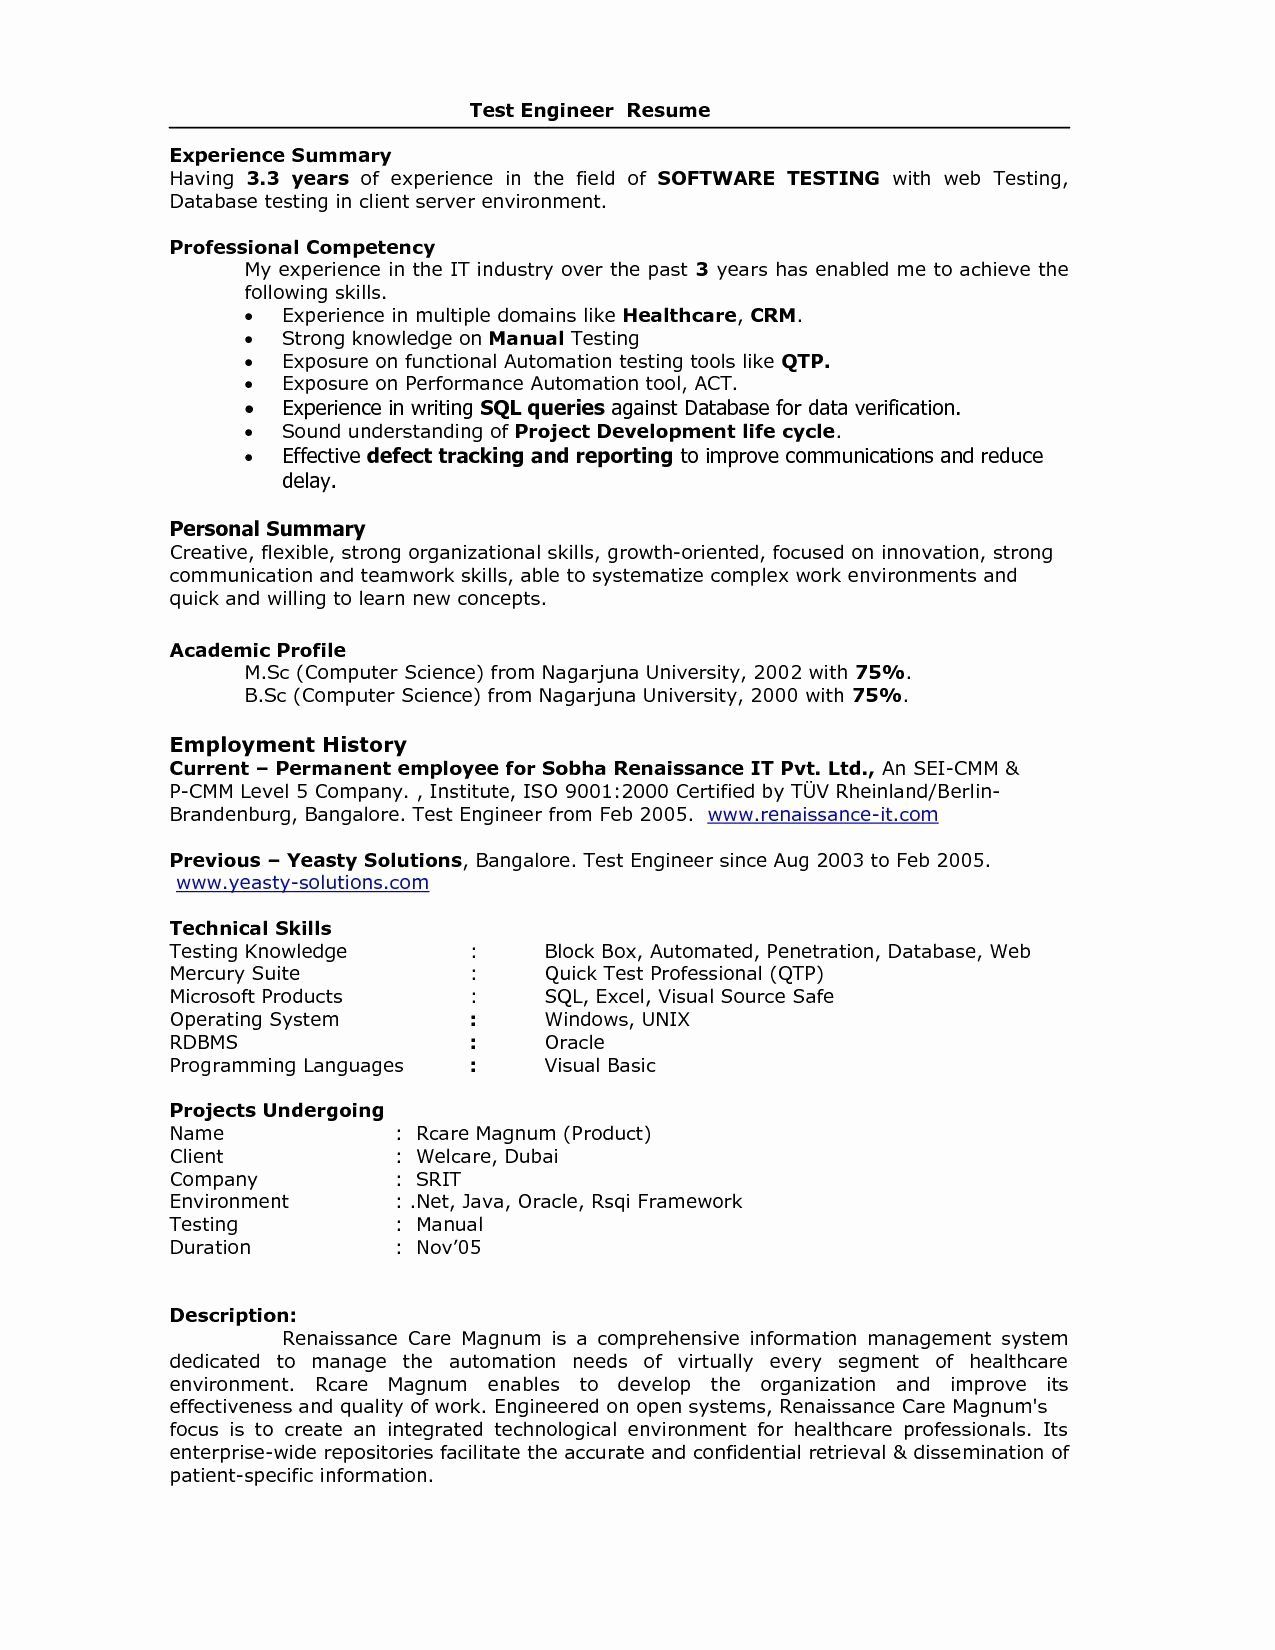 Software Testing Resume 5 Years Experience Awesome Sample Resume For Software Engineer With 5 Years Resume Examples Basic Resume Examples Resume No Experience